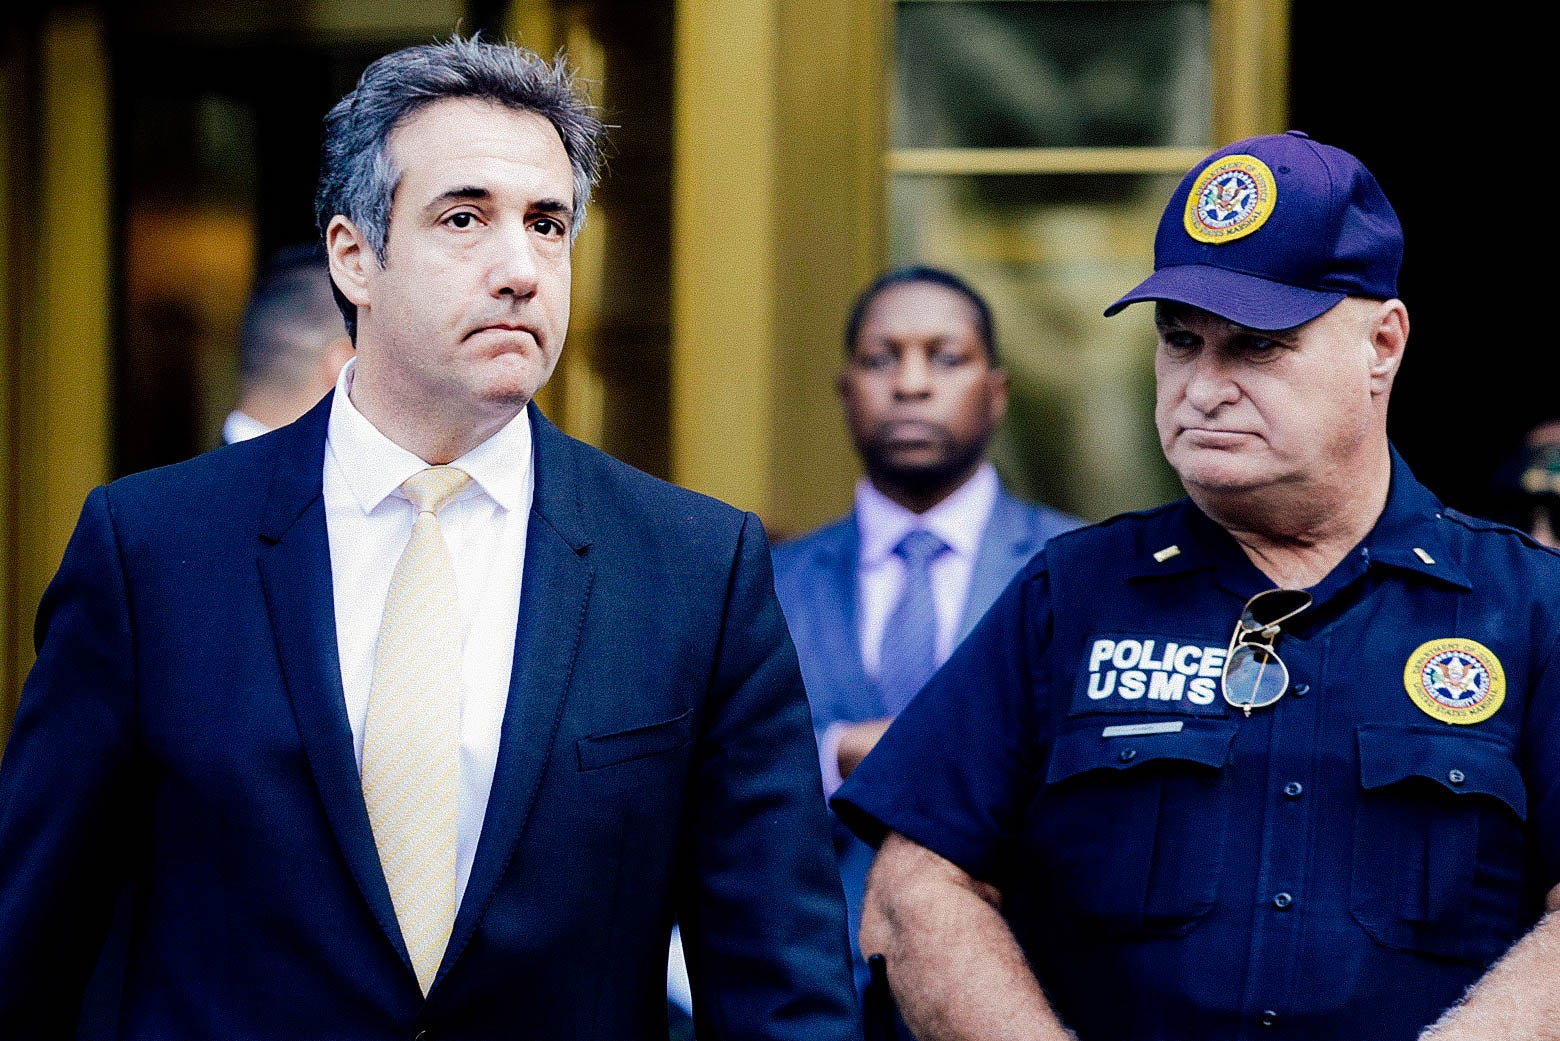 Michael Cohen, former lawyer to U.S. President Donald Trump, exits the Federal Courthouse on August 21, 2018 in New York City.